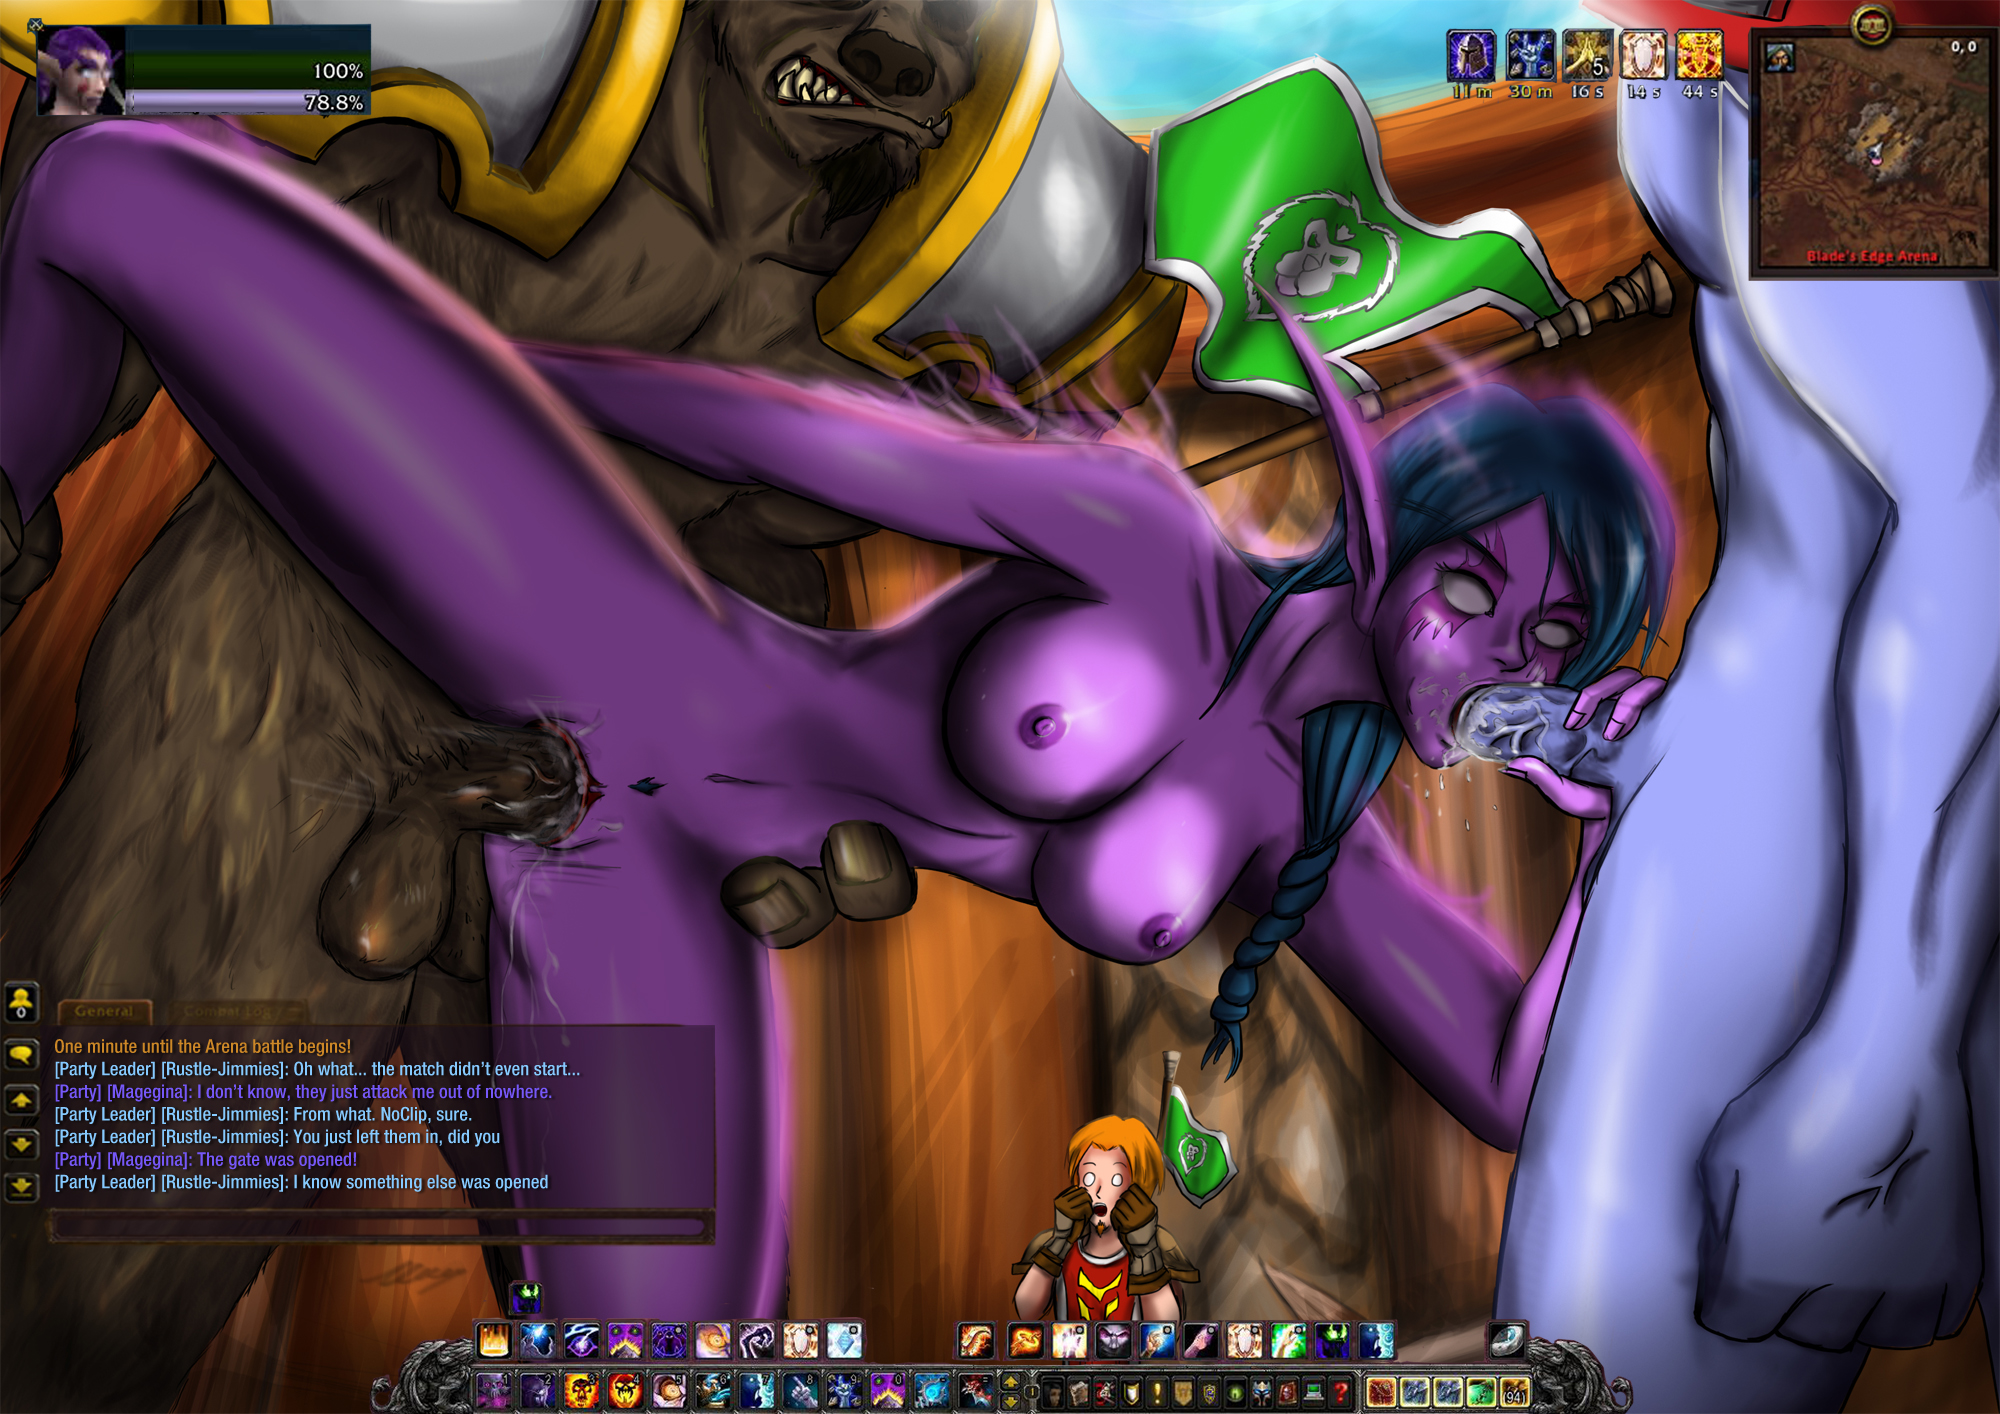 Hot night elf porn fucks tubes